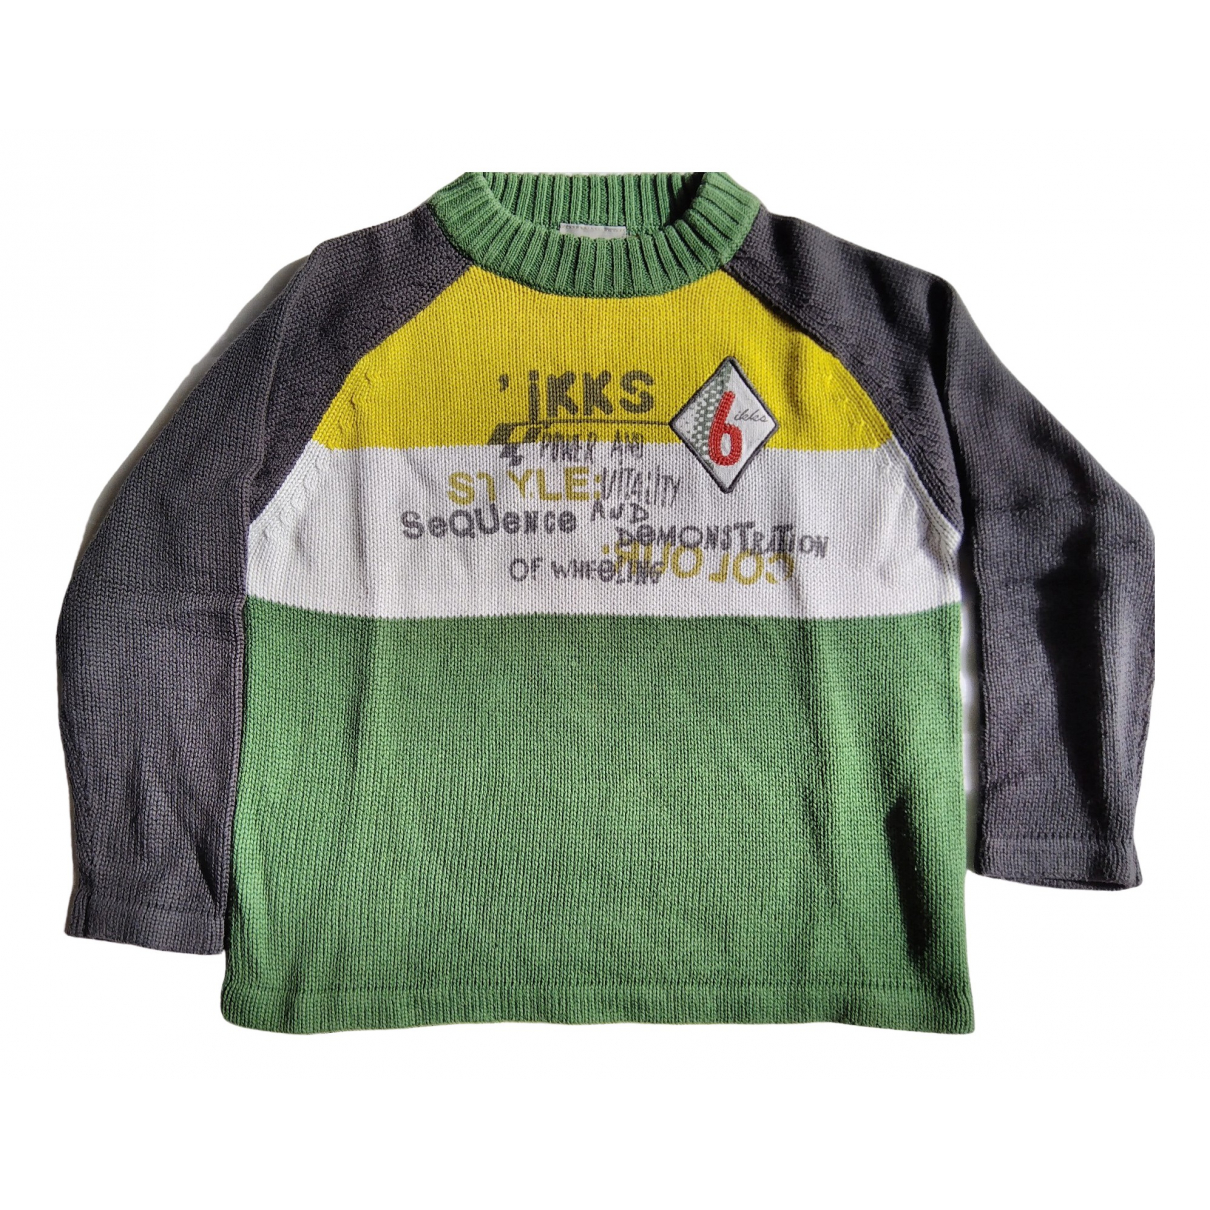 Ikks \N Knitwear for Kids 8 years - up to 128cm FR